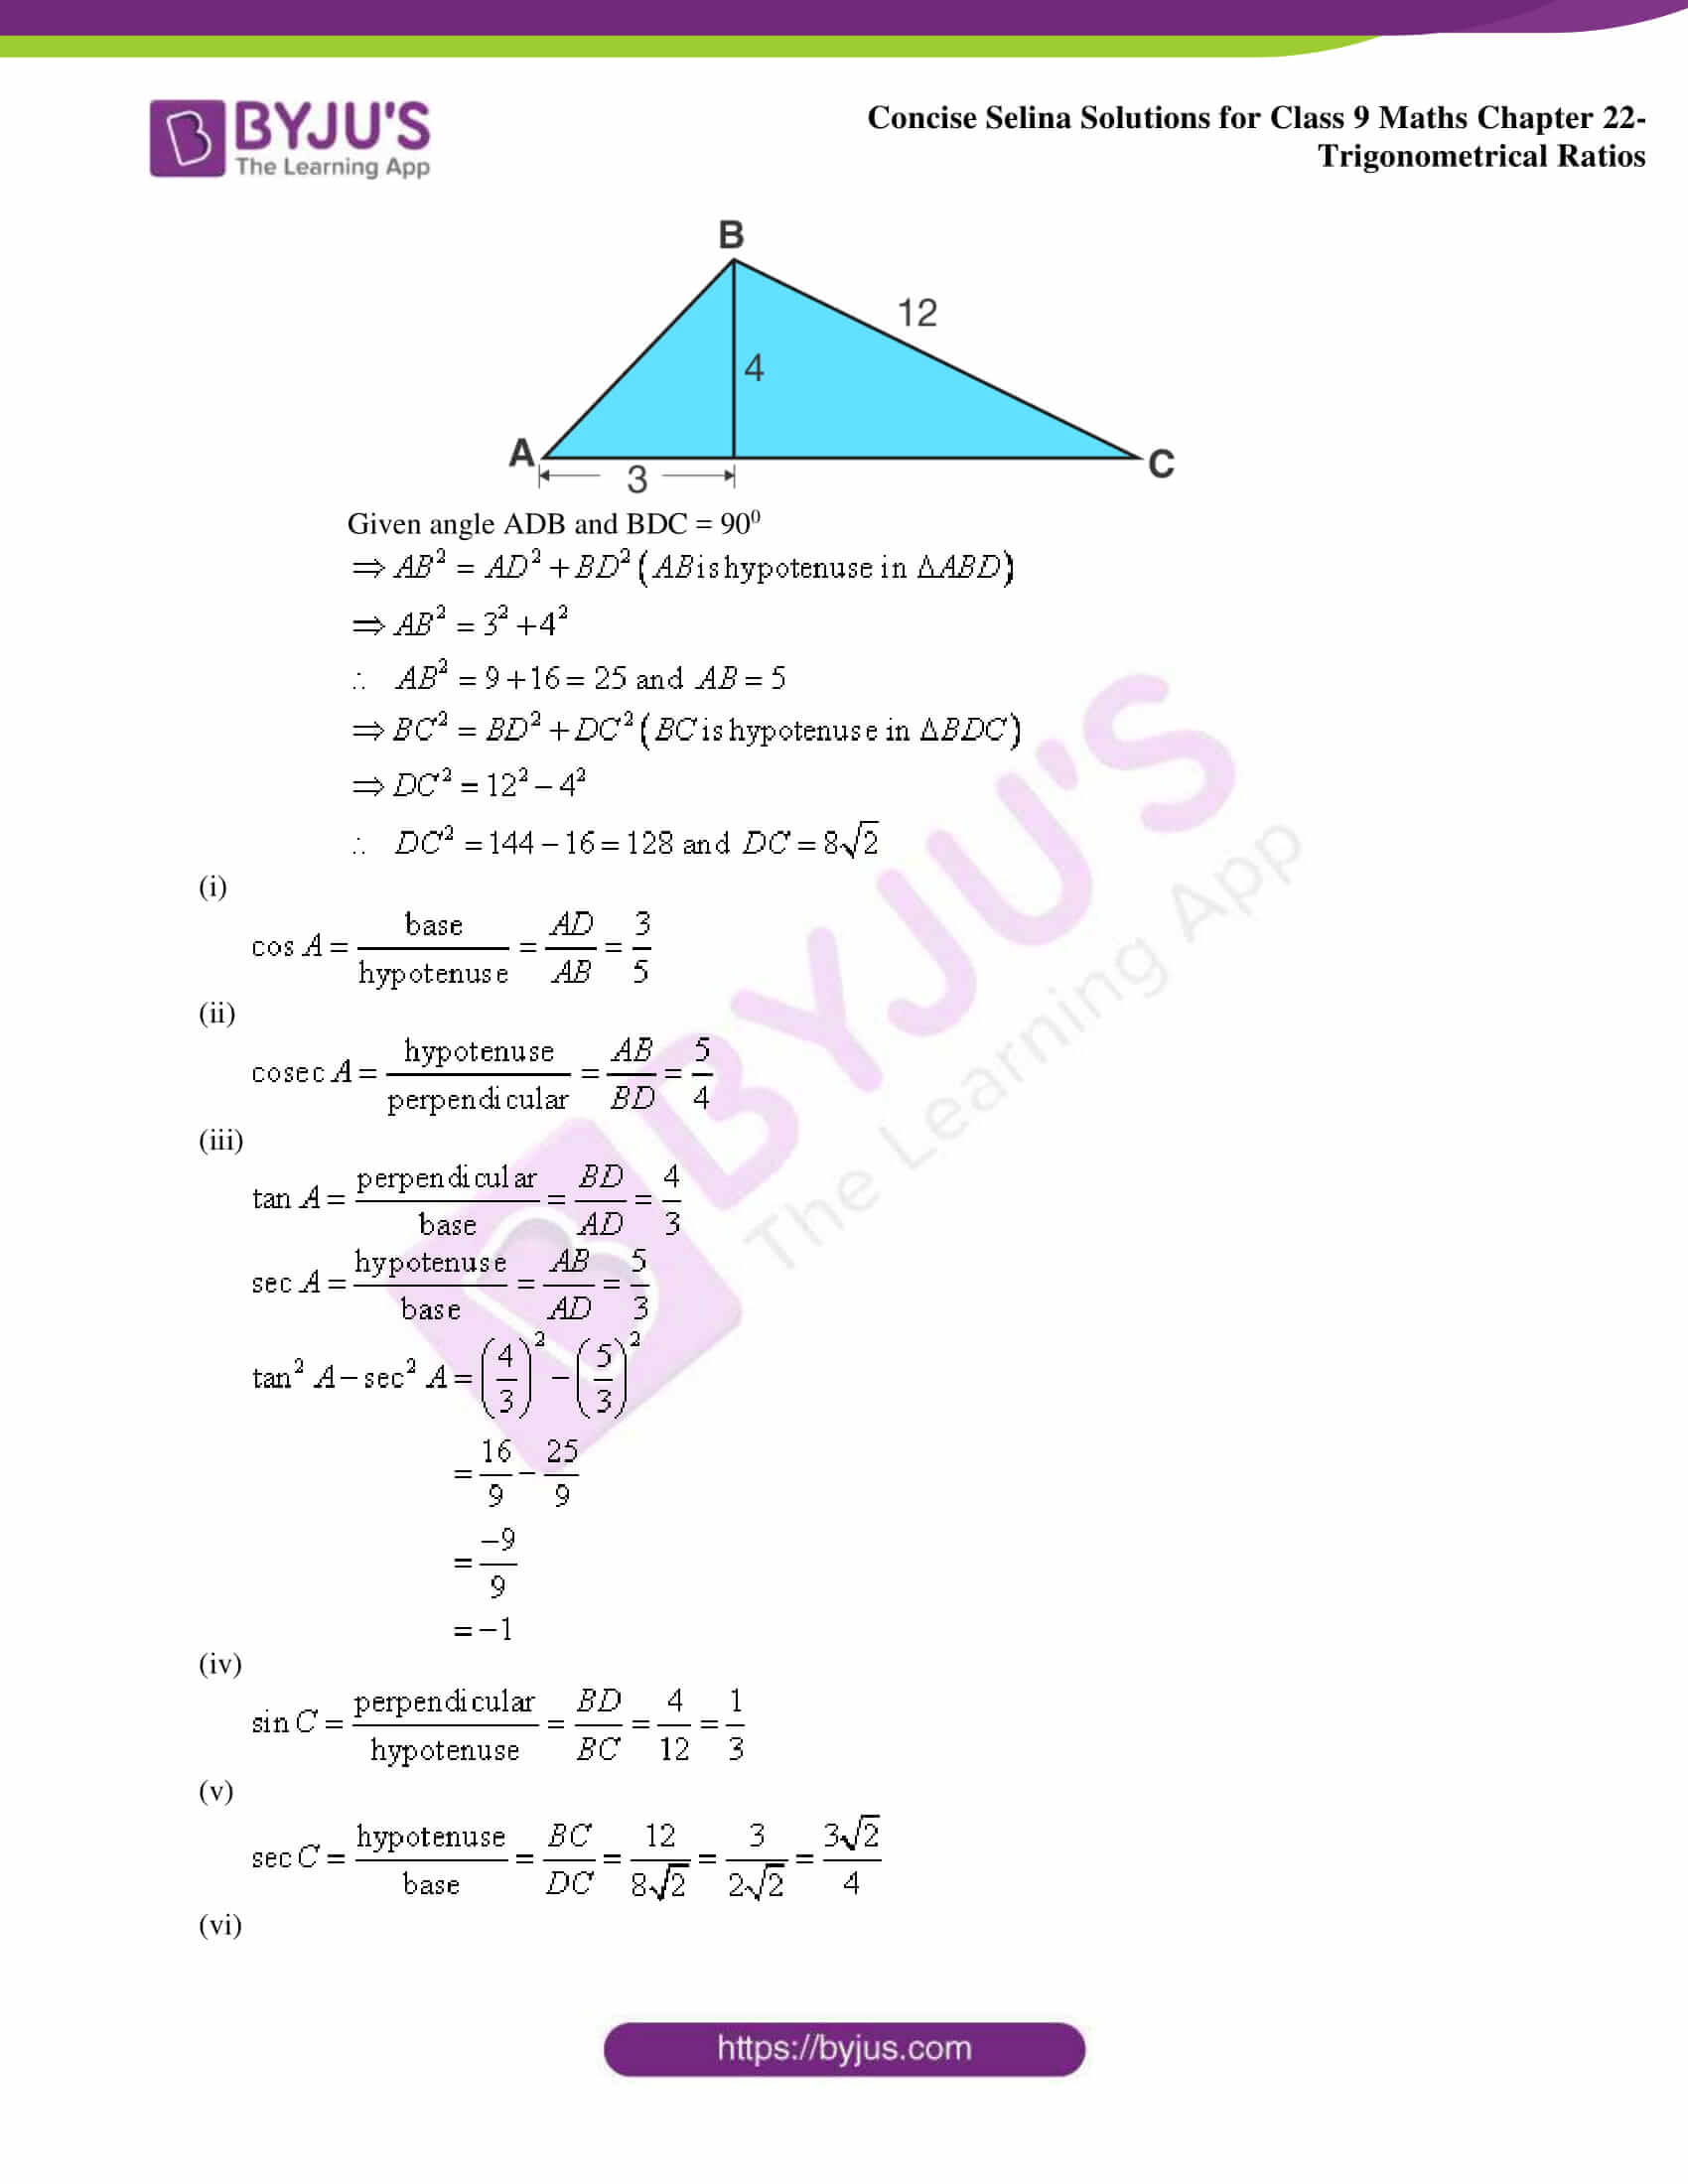 Concise Selina Solutions Class 9 Maths Chapter 22 Trigonometrical Ratios part 04